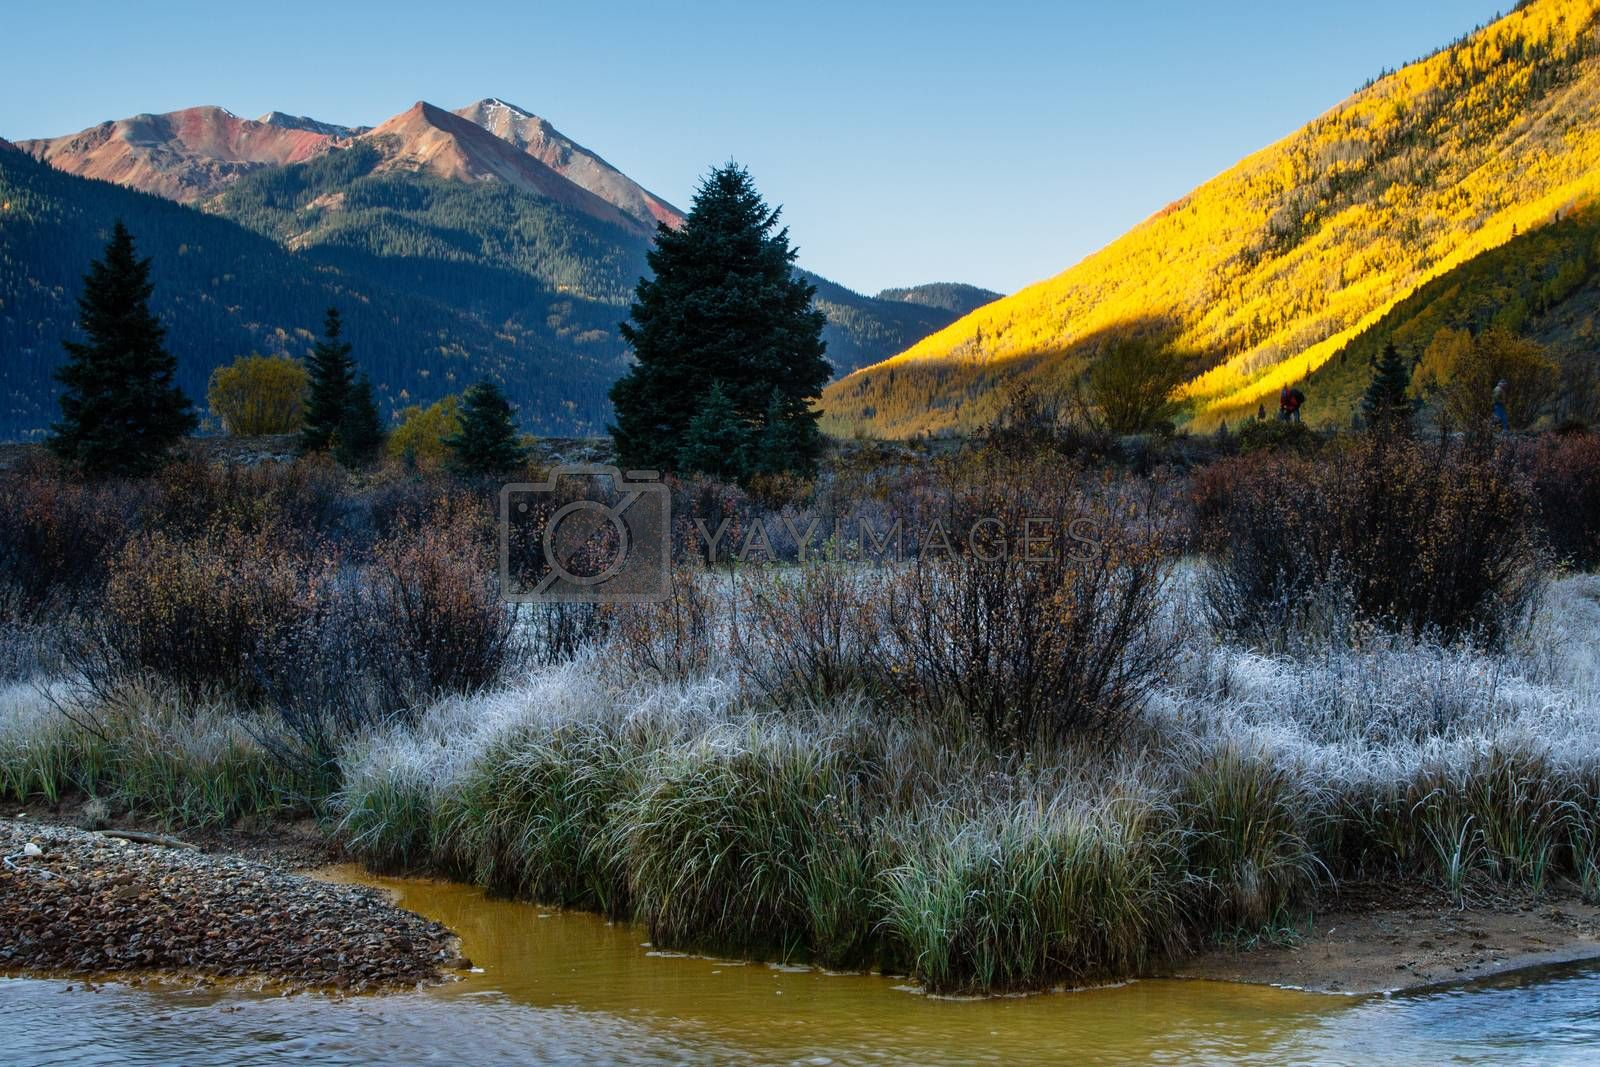 The scenic beauty of Colorado and the Rocky Mountains.